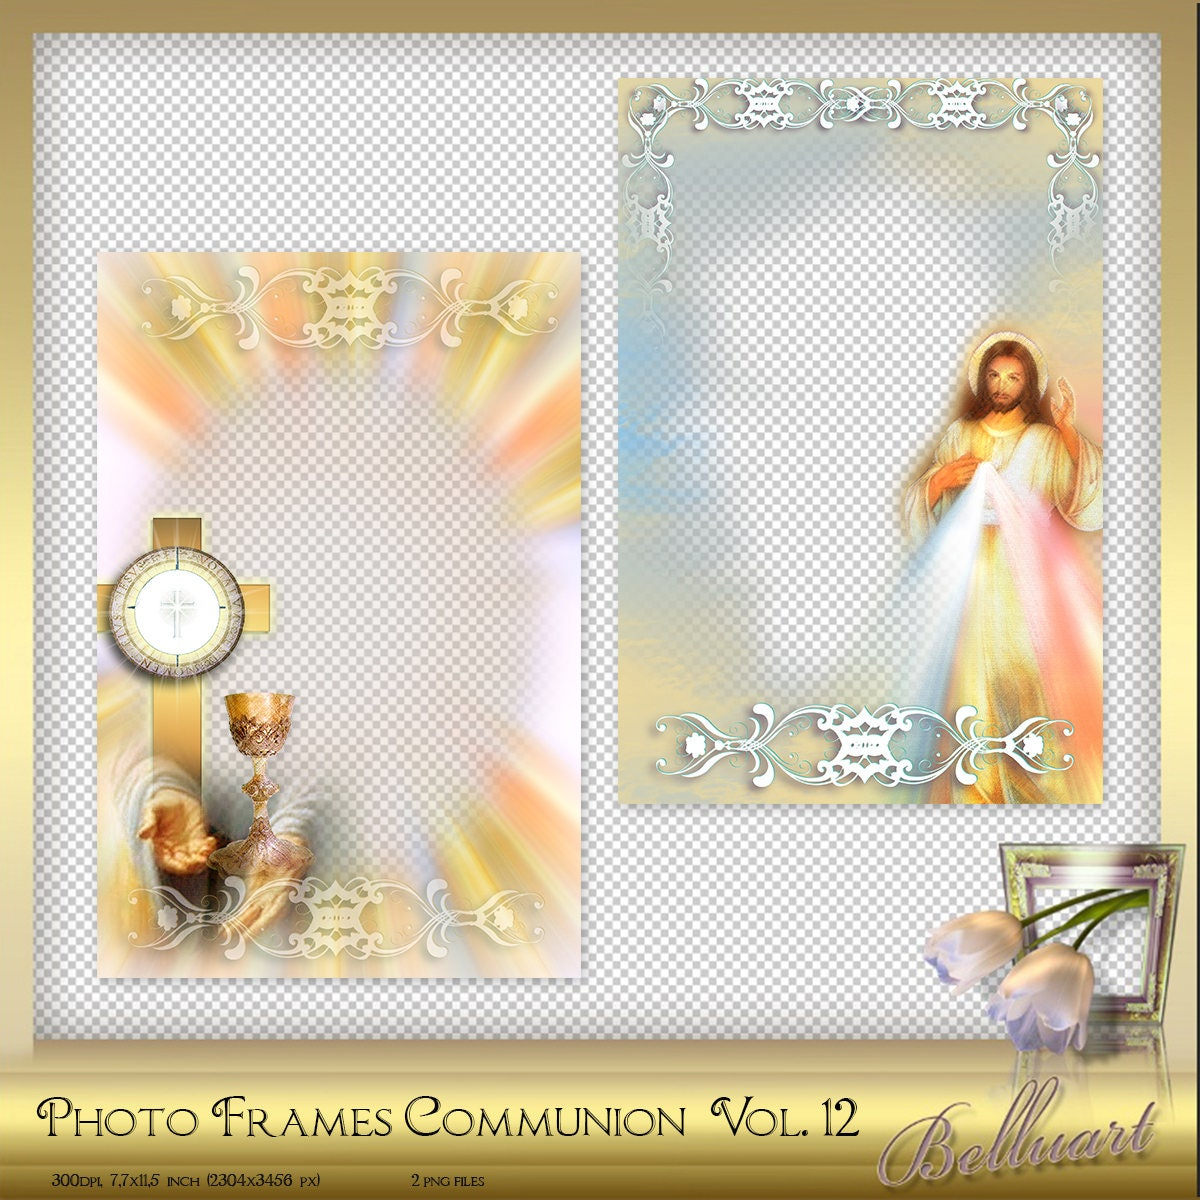 2 Digital Photo Frames First Communion Confirmation Vol. 12 ...